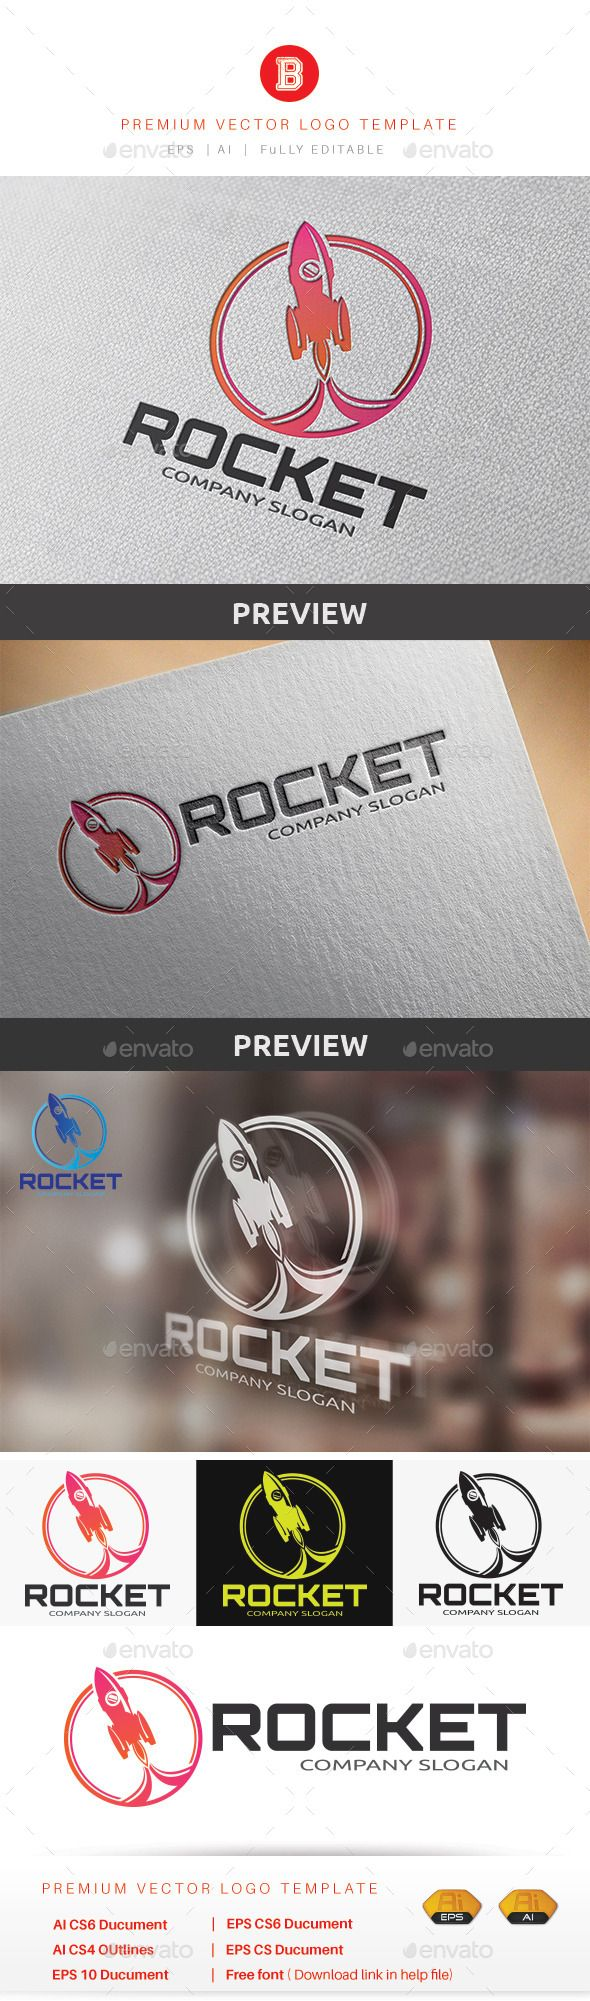 Rocket Logo — Vector EPS #fire #iconic • Available here → https://graphicriver.net/item/rocket-logo/9223849?ref=pxcr